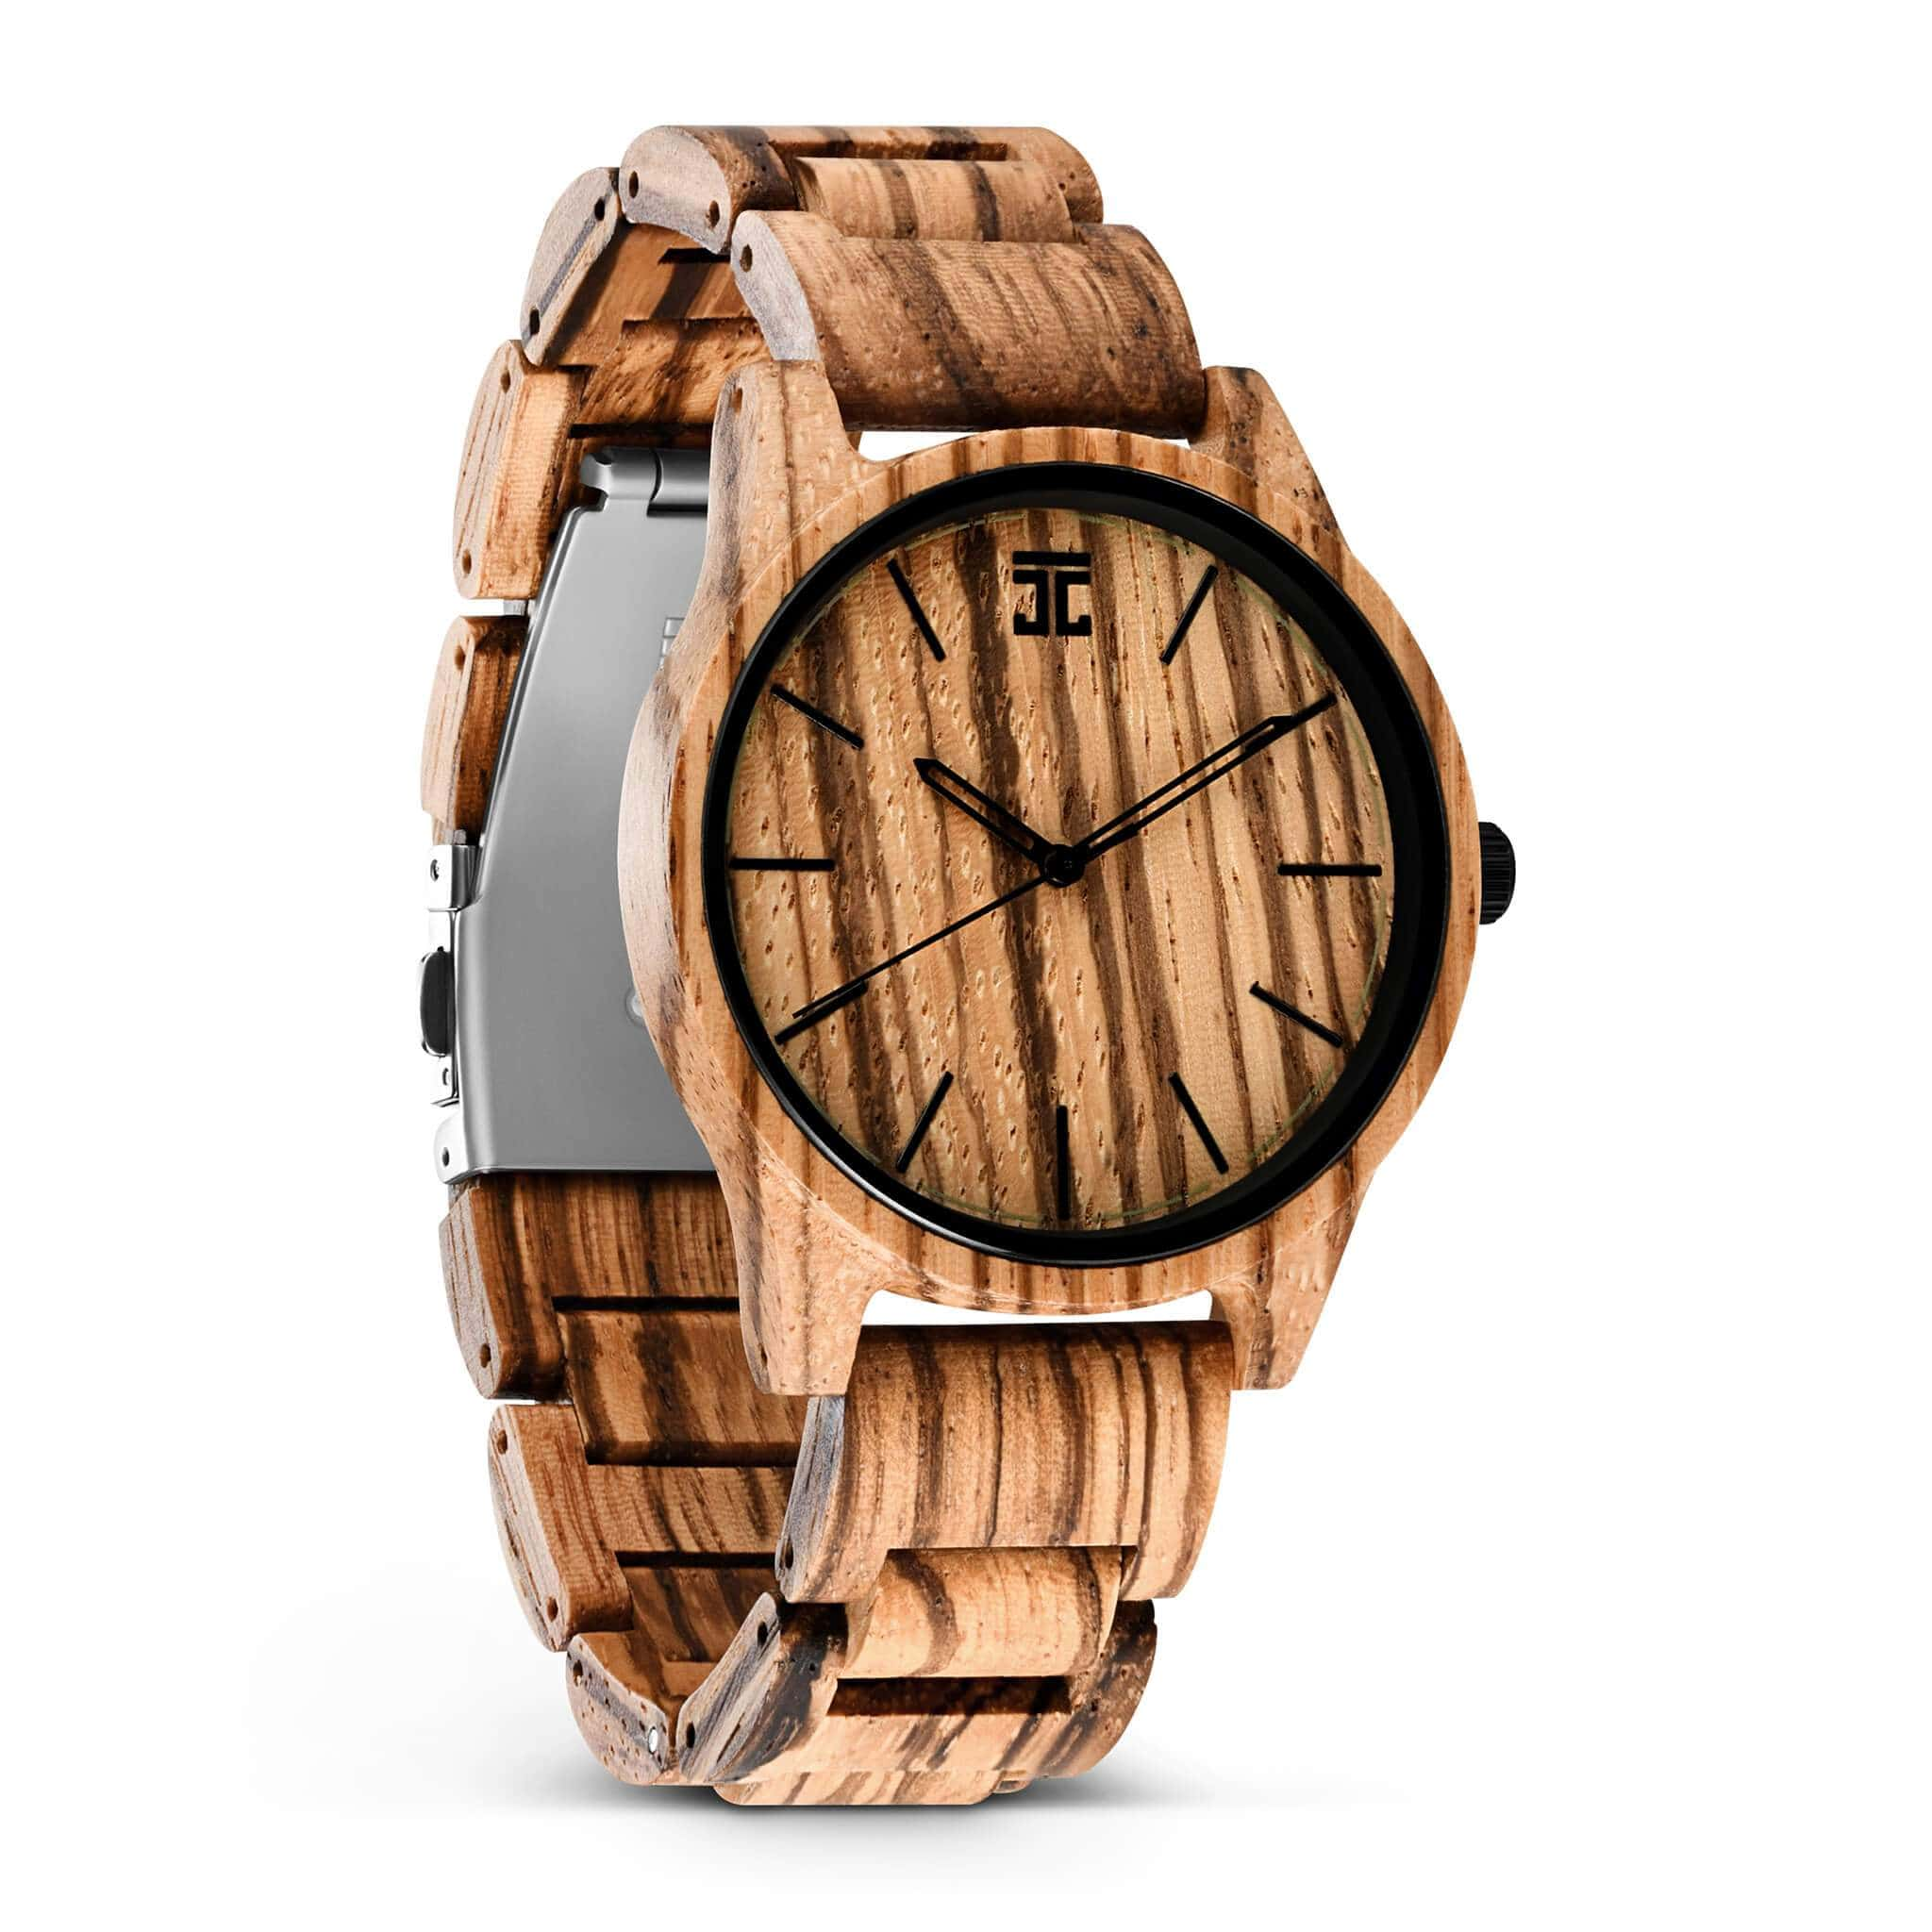 Zebra Wood - Wooden Watches and Sunglasses - Joycoast